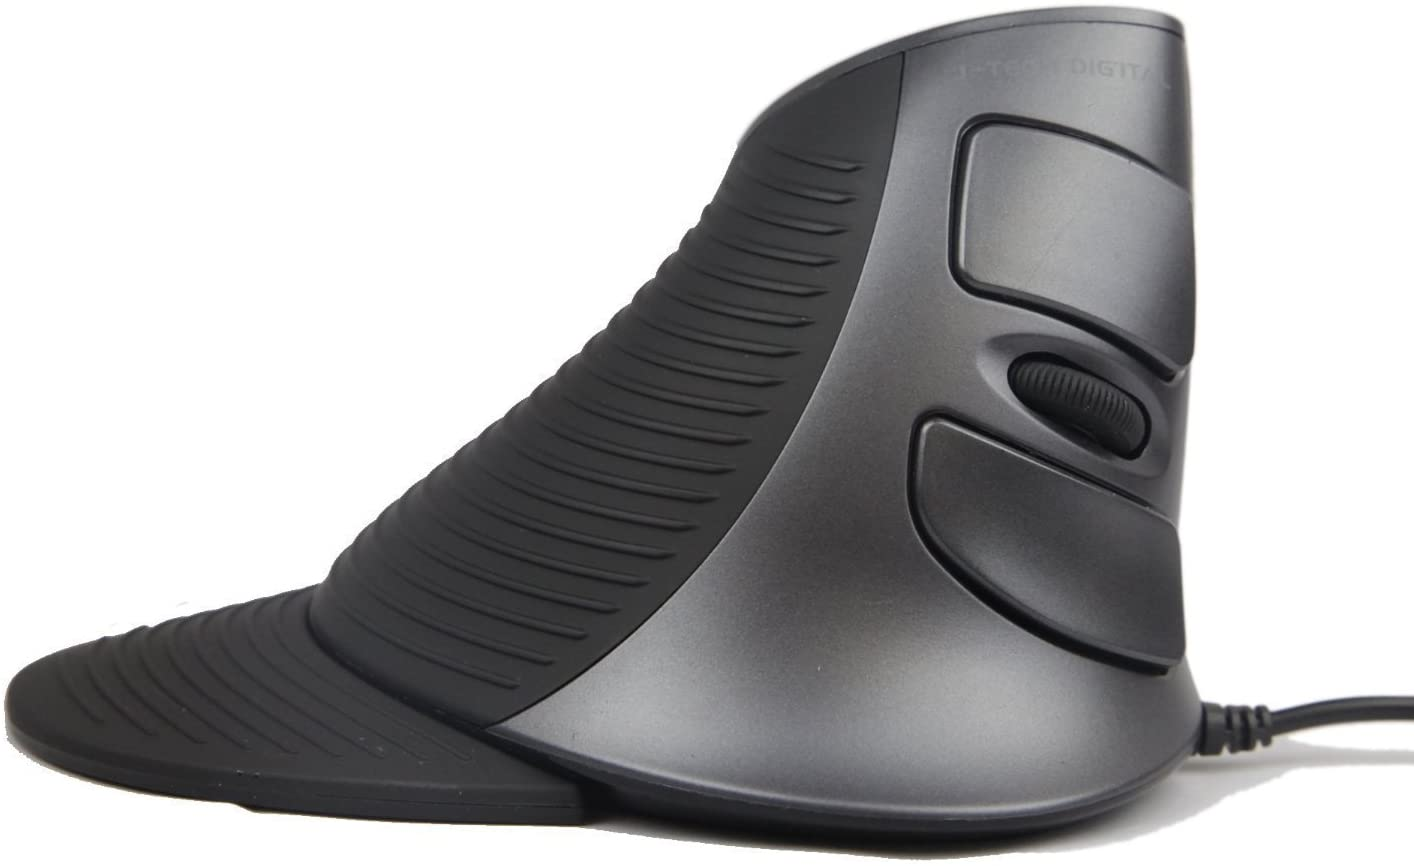 J-Tech Digital Endurance Wired Scroll Vertical Mouse